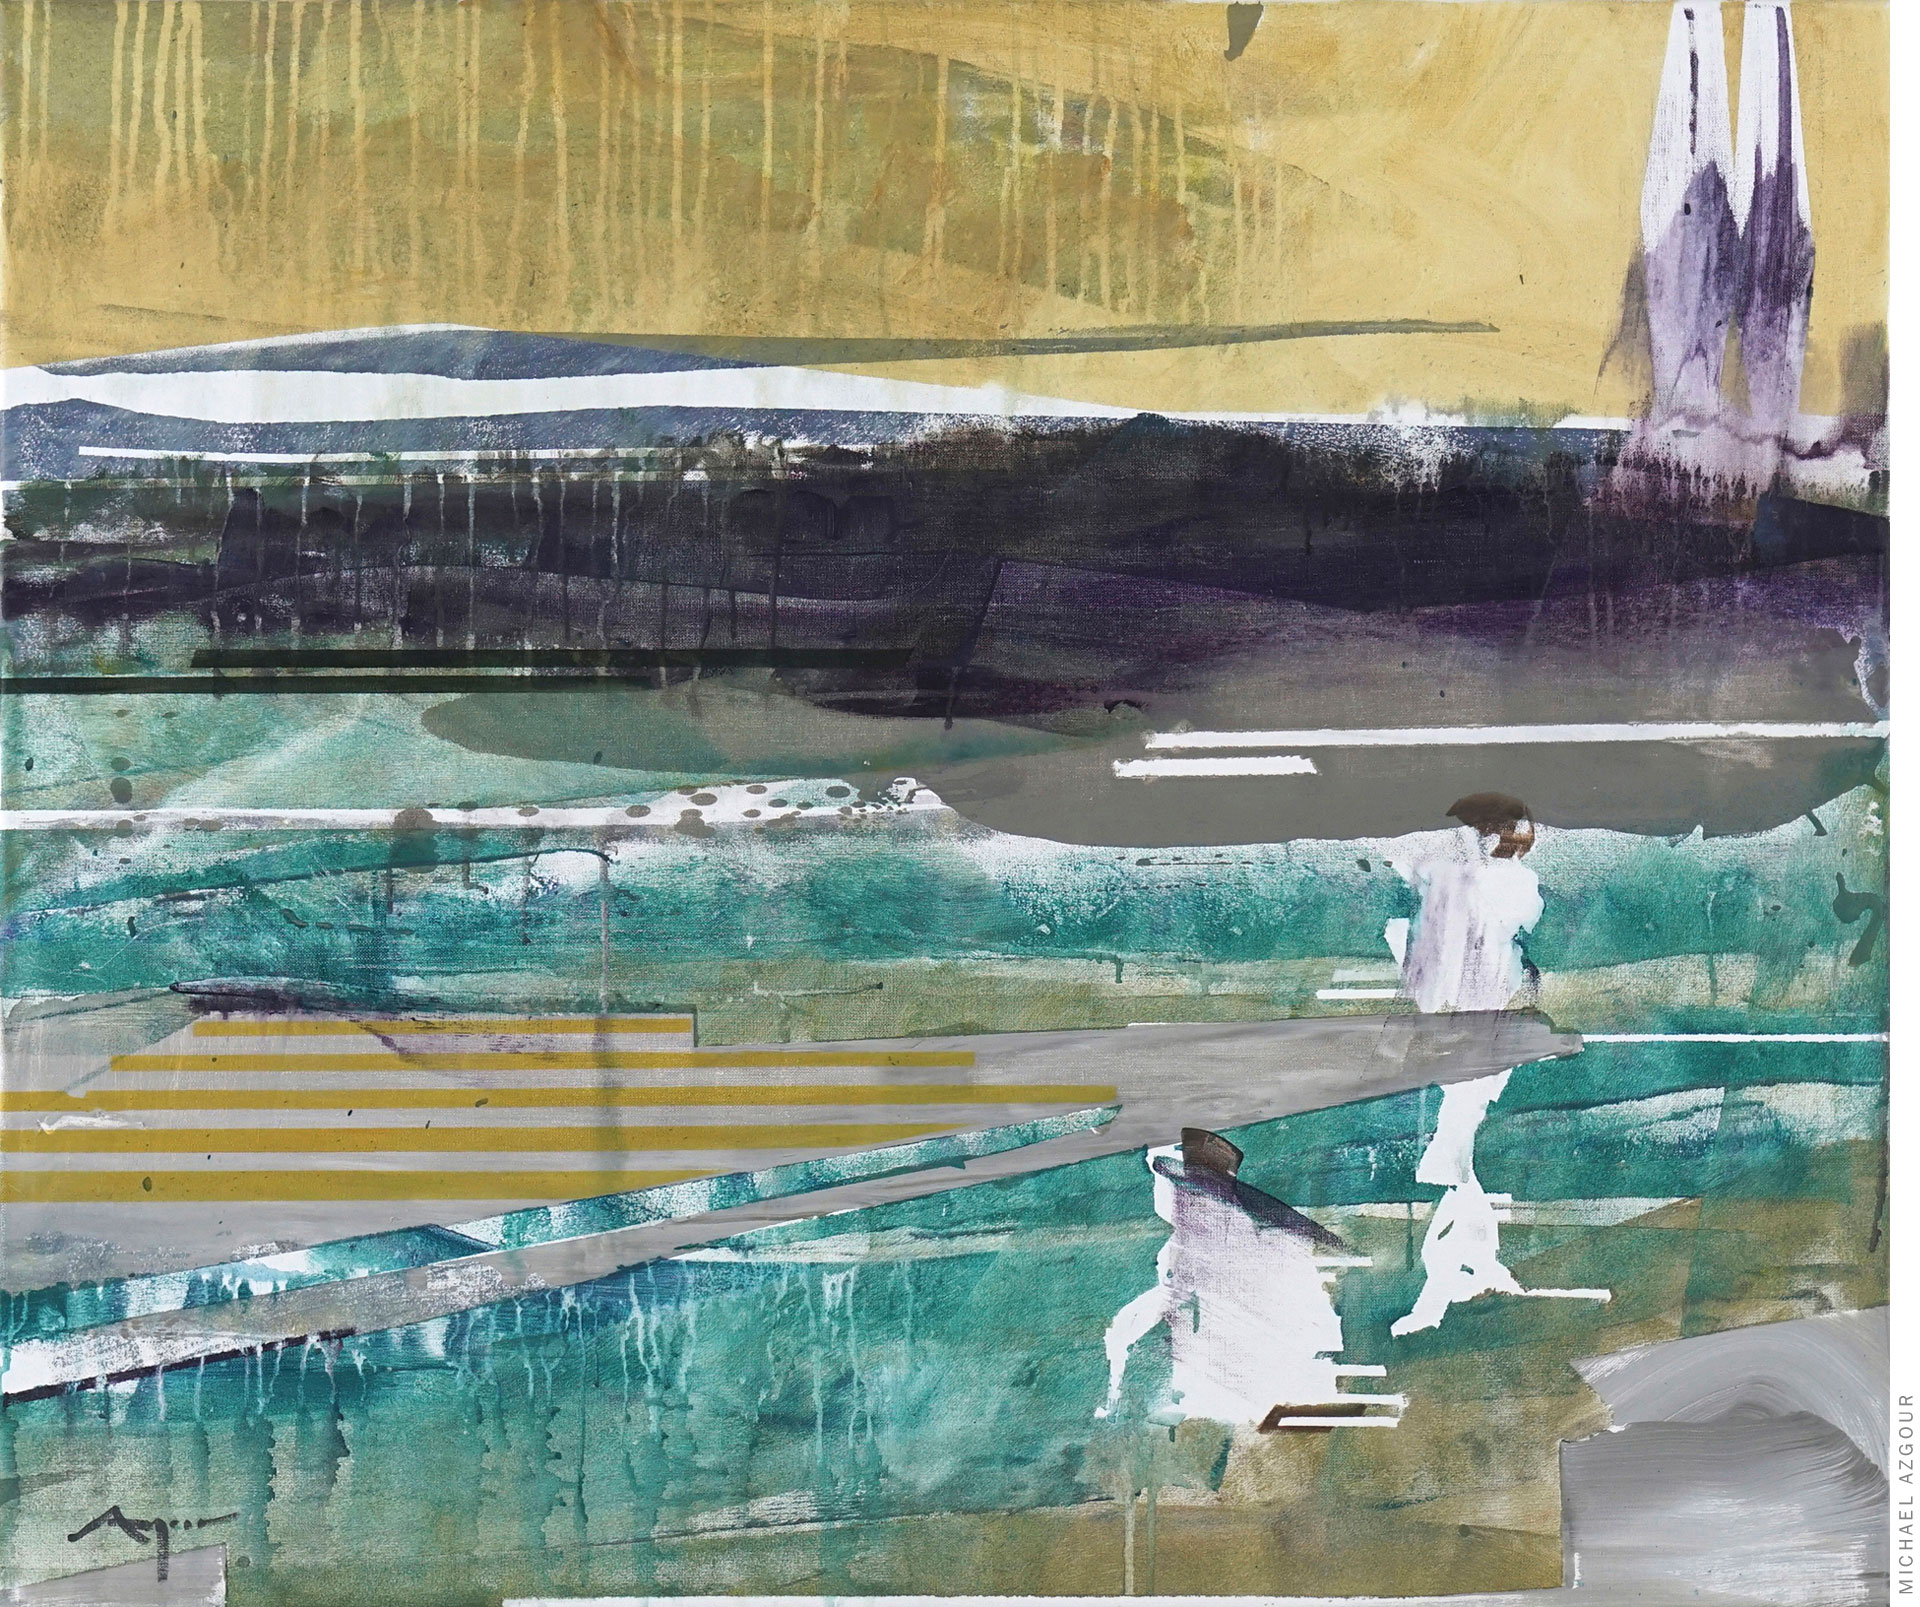 Abstract figurative painting by contemporary artist, Michael Azgour, titled Boys at the Lake, 2020, oil and acrylic on linen, depicting two boys on the lake shore painted abstractly